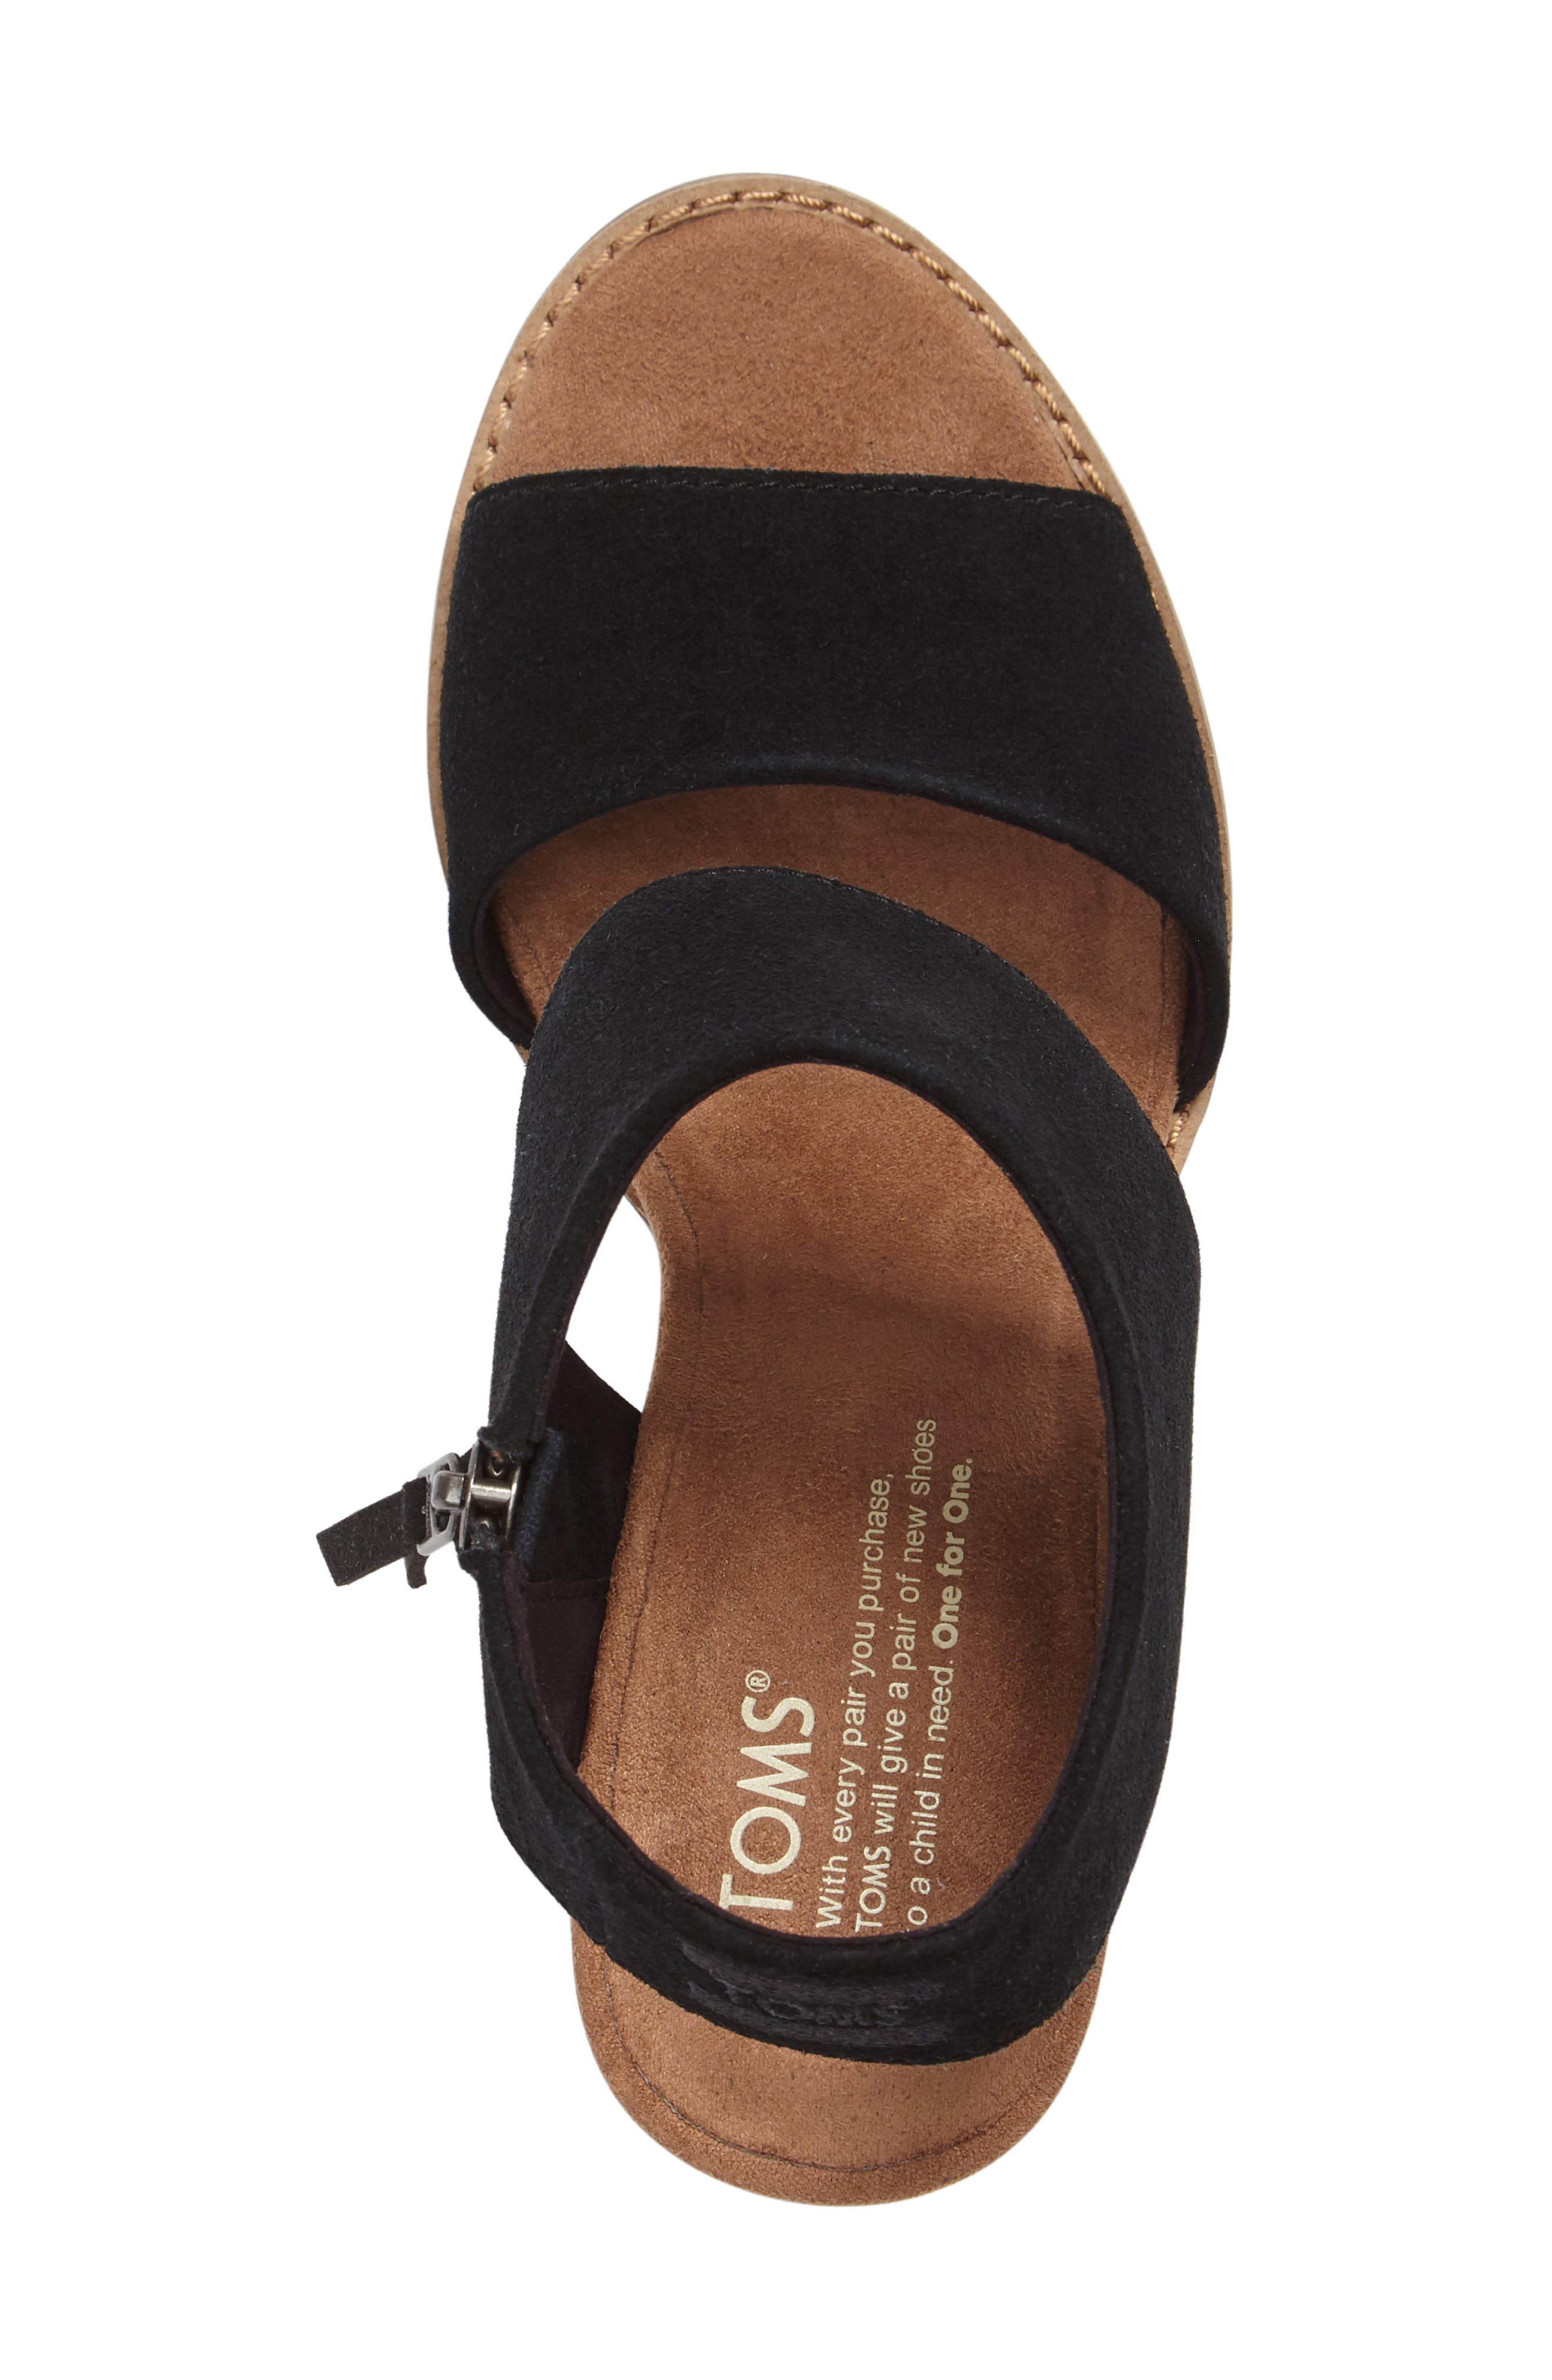 Majorca Sandal,                             Alternate thumbnail 3, color,                             BLACK